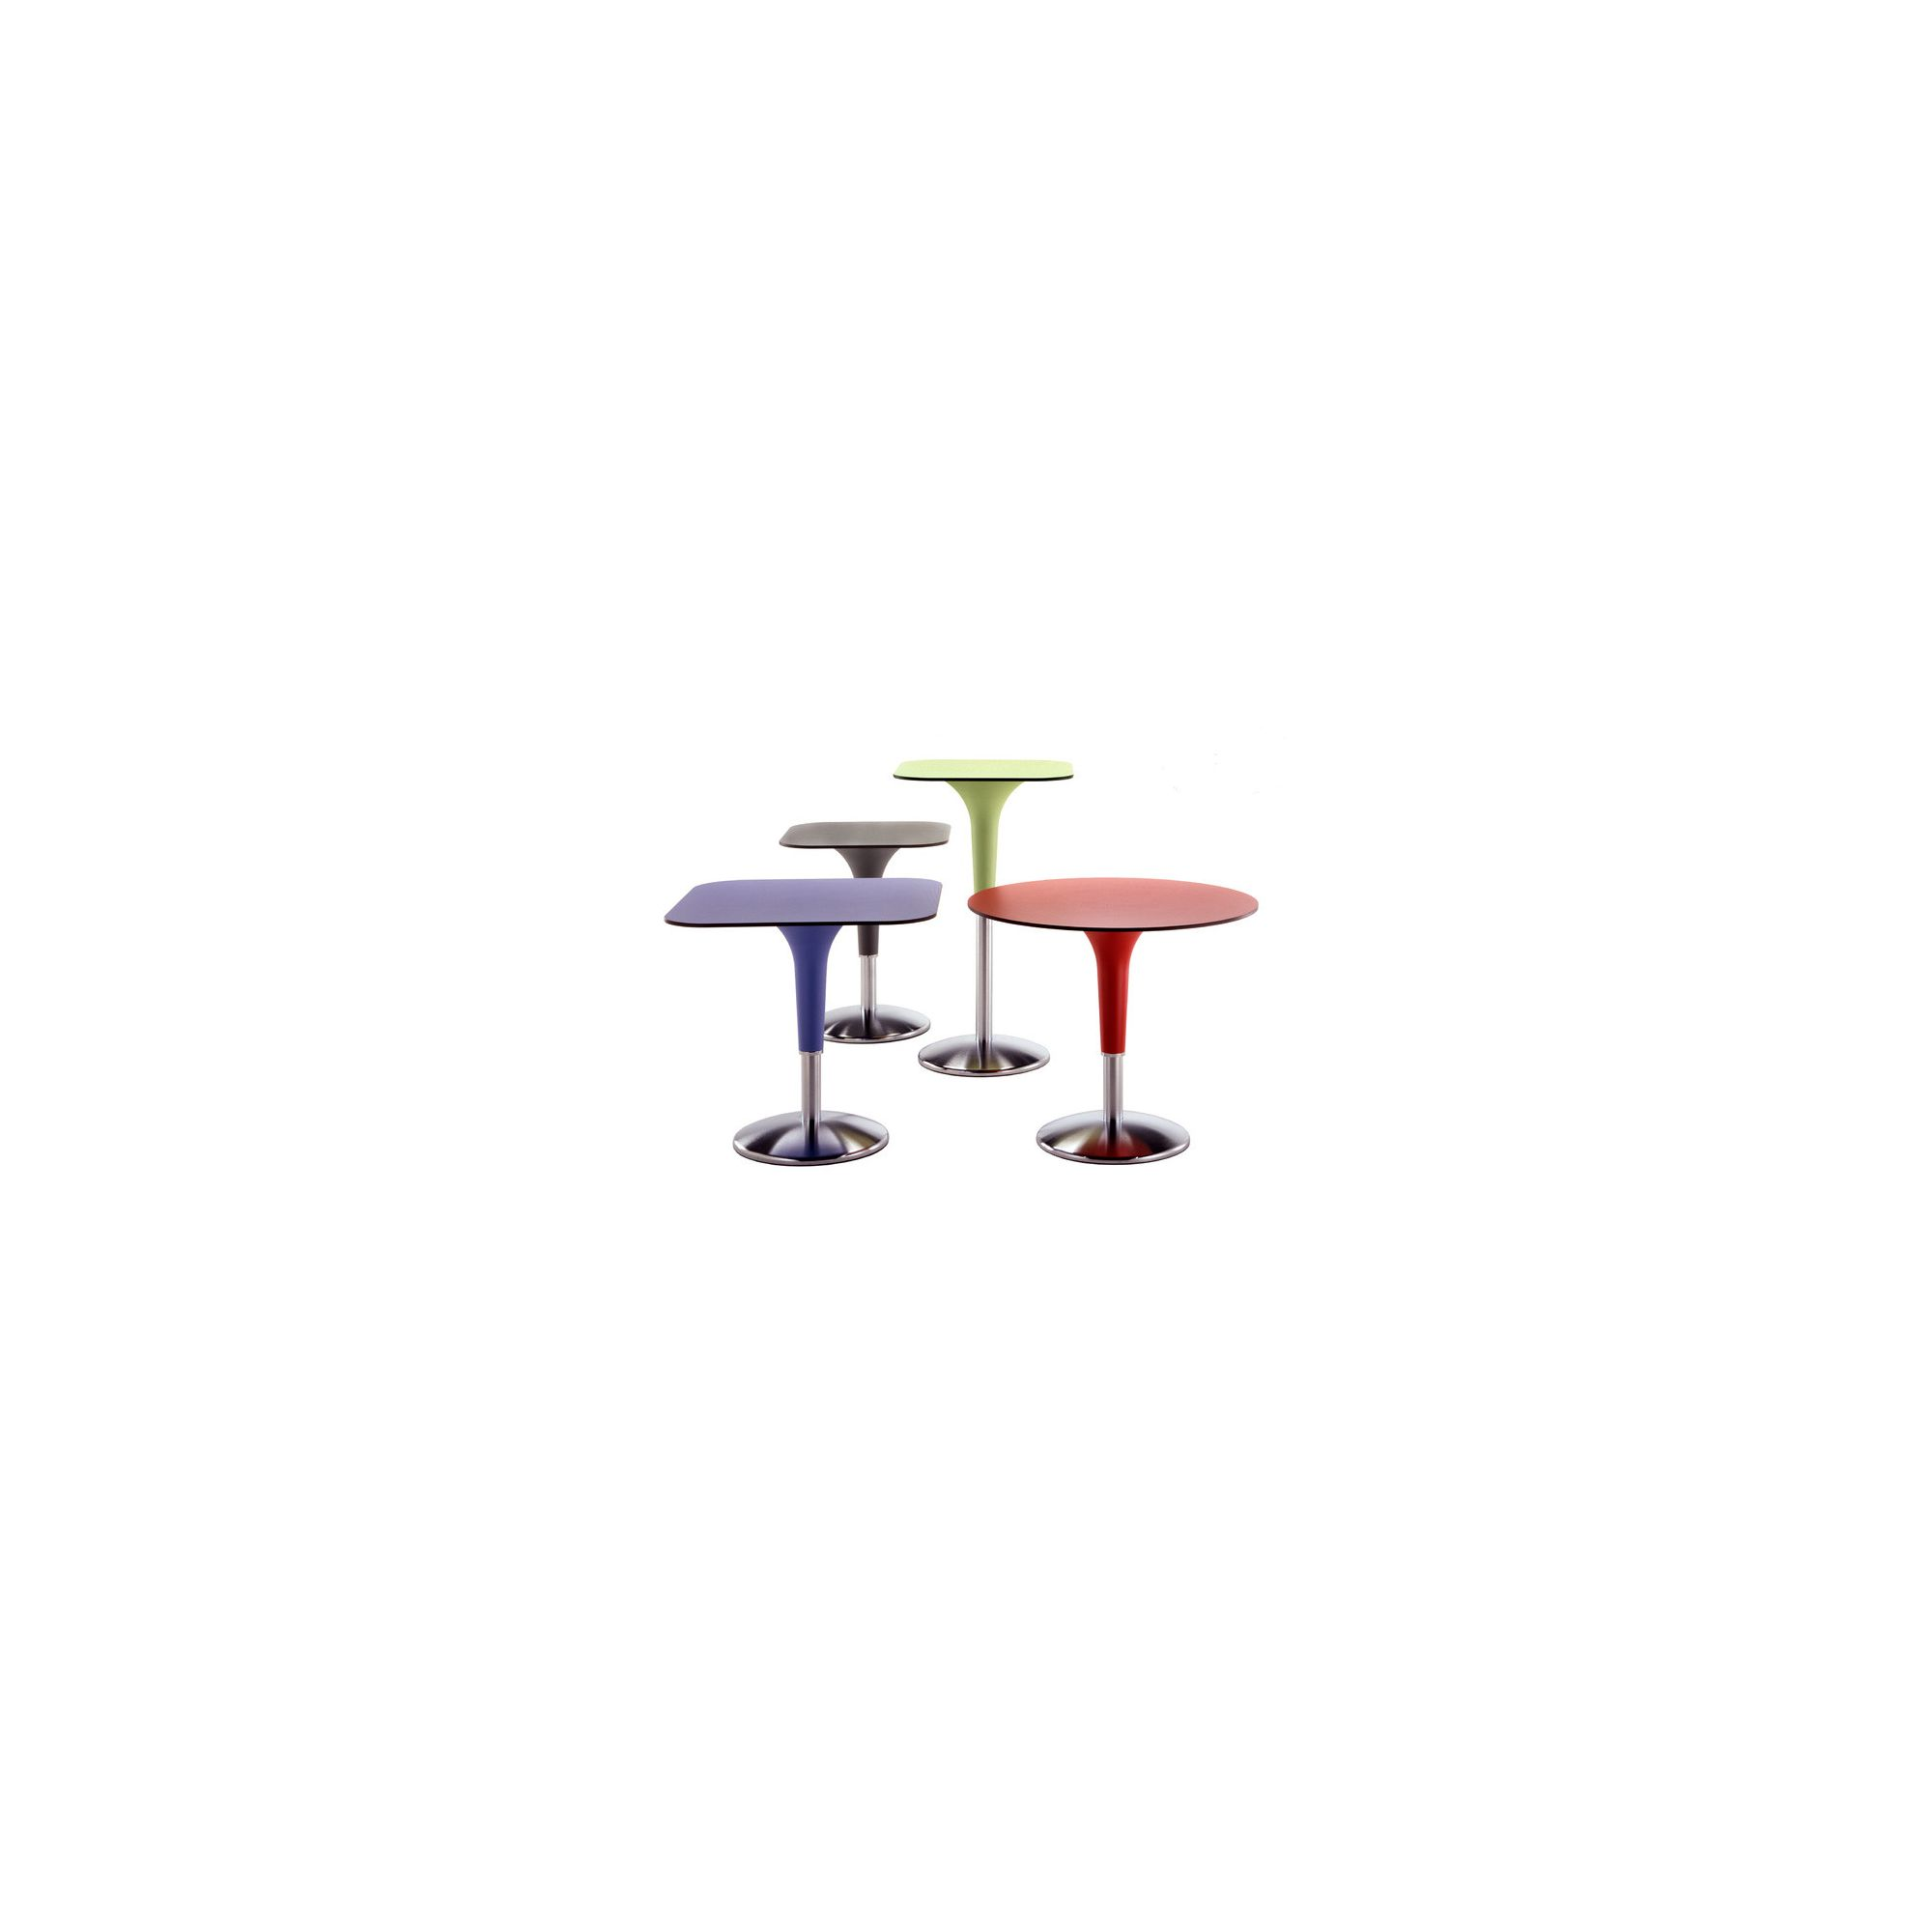 Rexite Zanziplano Round Table - 90cm x 75cm - Red at Tescos Direct